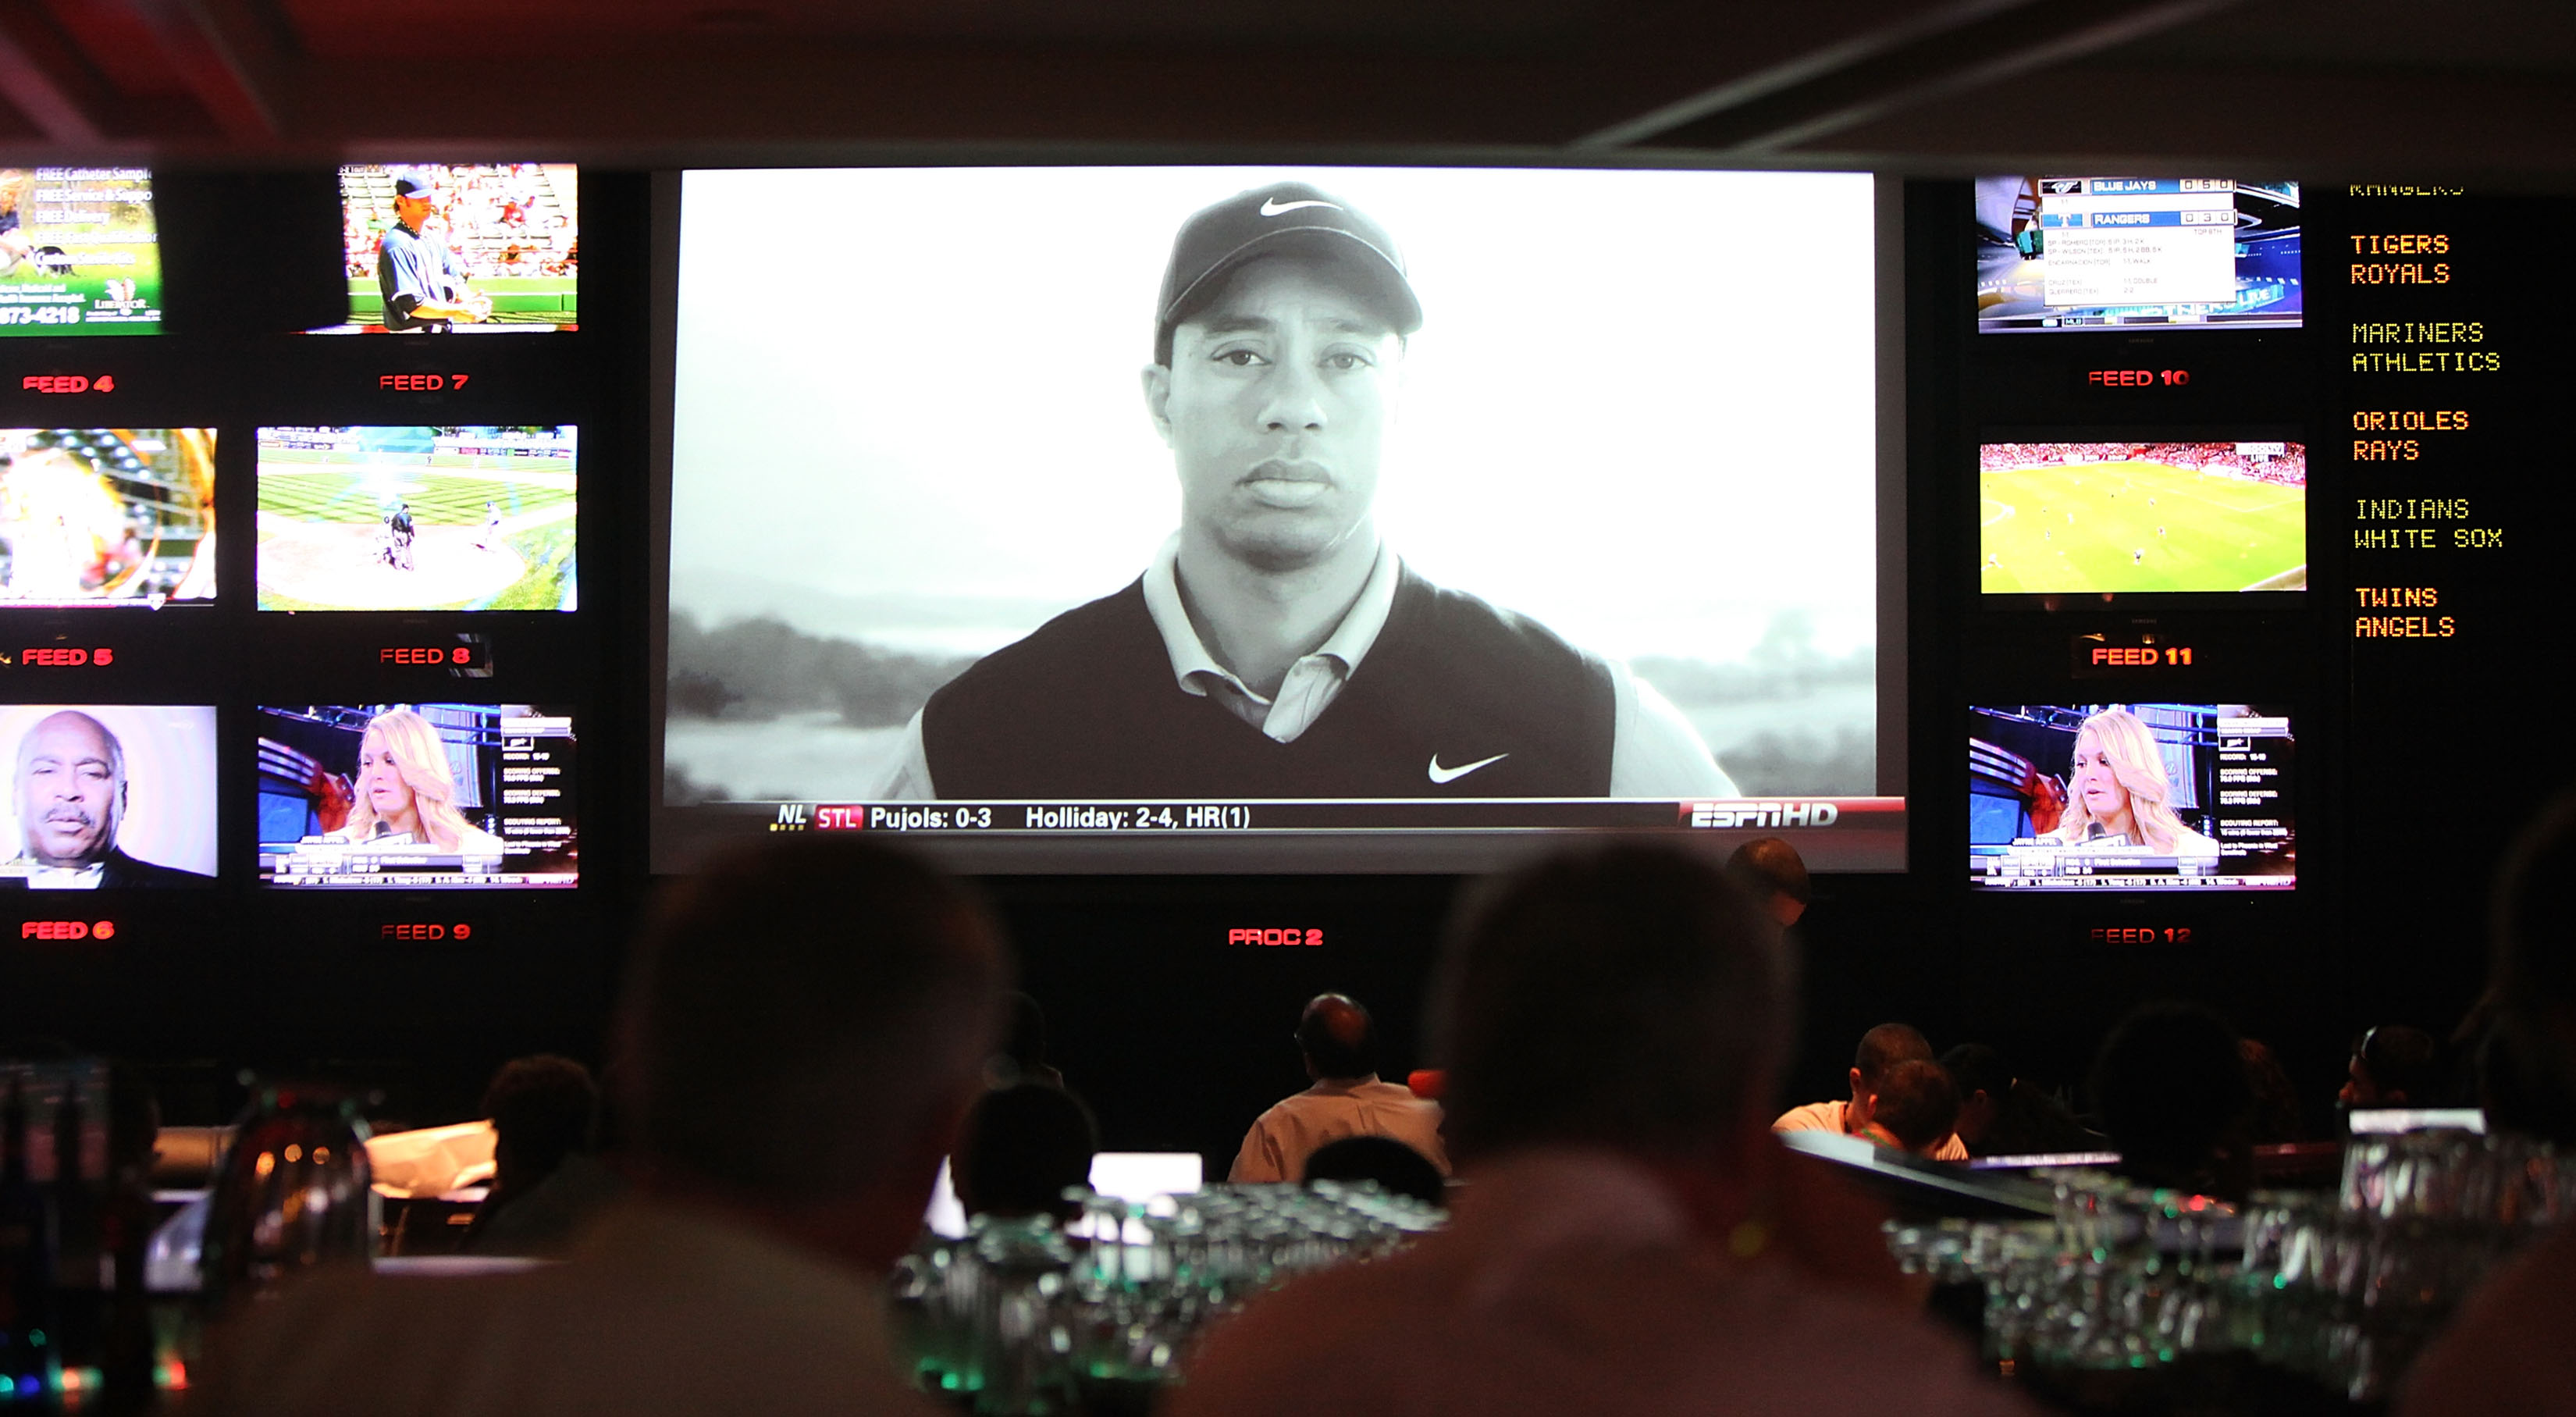 NEW YORK - APRIL 08:  Sports fans watch the controversial new Tiger Woods Nike advertisement featuring the voice of his late father Earl during Masters coverage televised at ESPN Zone April 8, 2010 in New York City. Woods is playing in the Masters for his